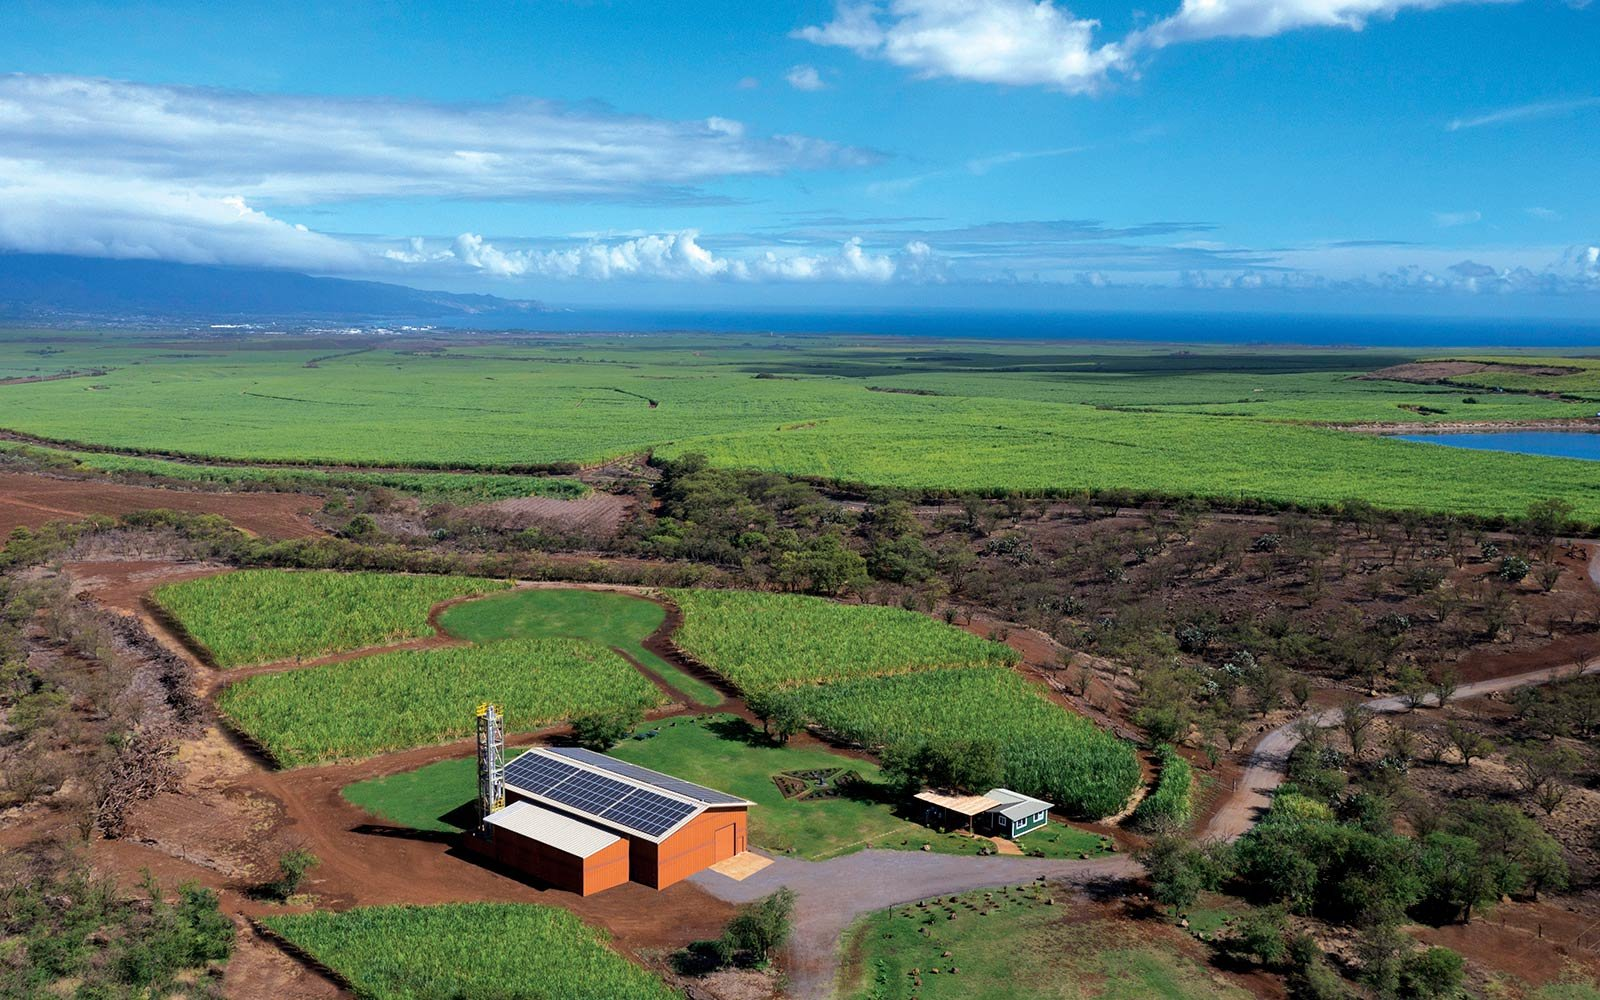 12. The Hawaii Sea Spirits Organic Farm and Distillery